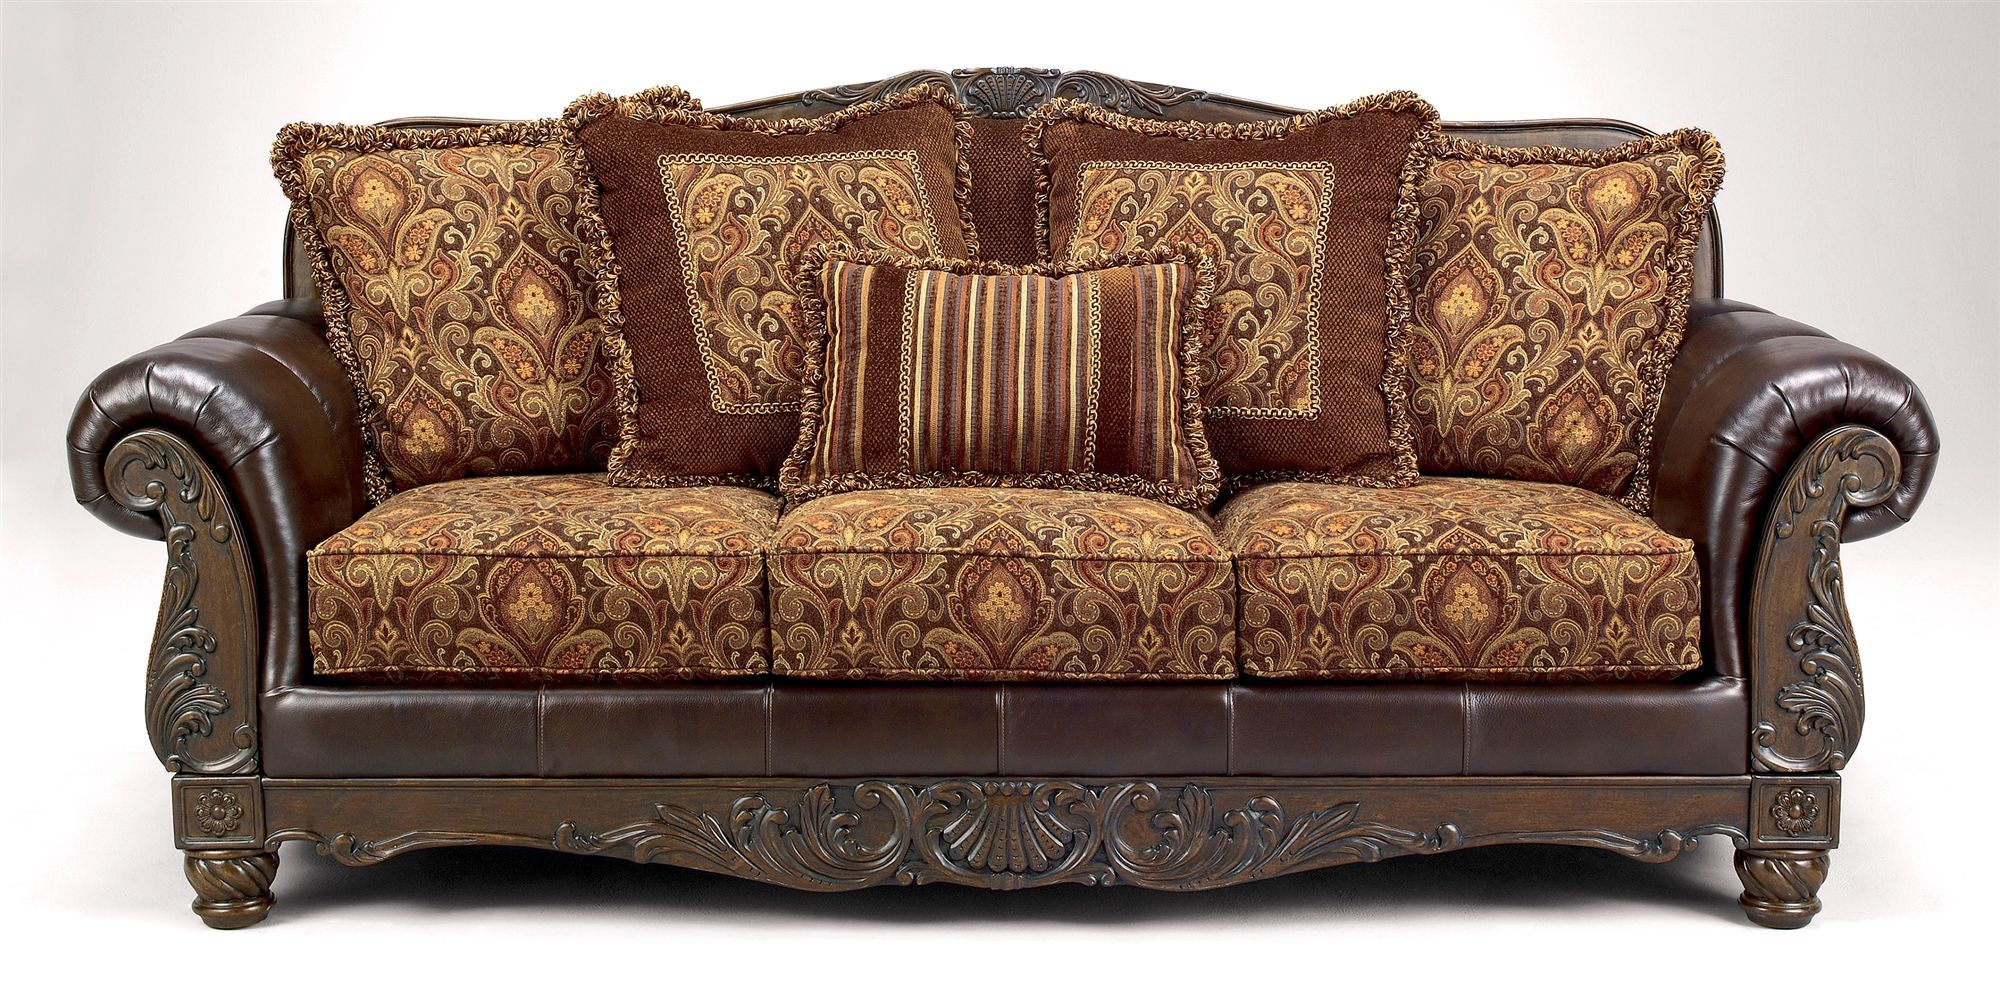 Buy Low Price Signet by ivgStores Carved Wood Sofa w Truffle